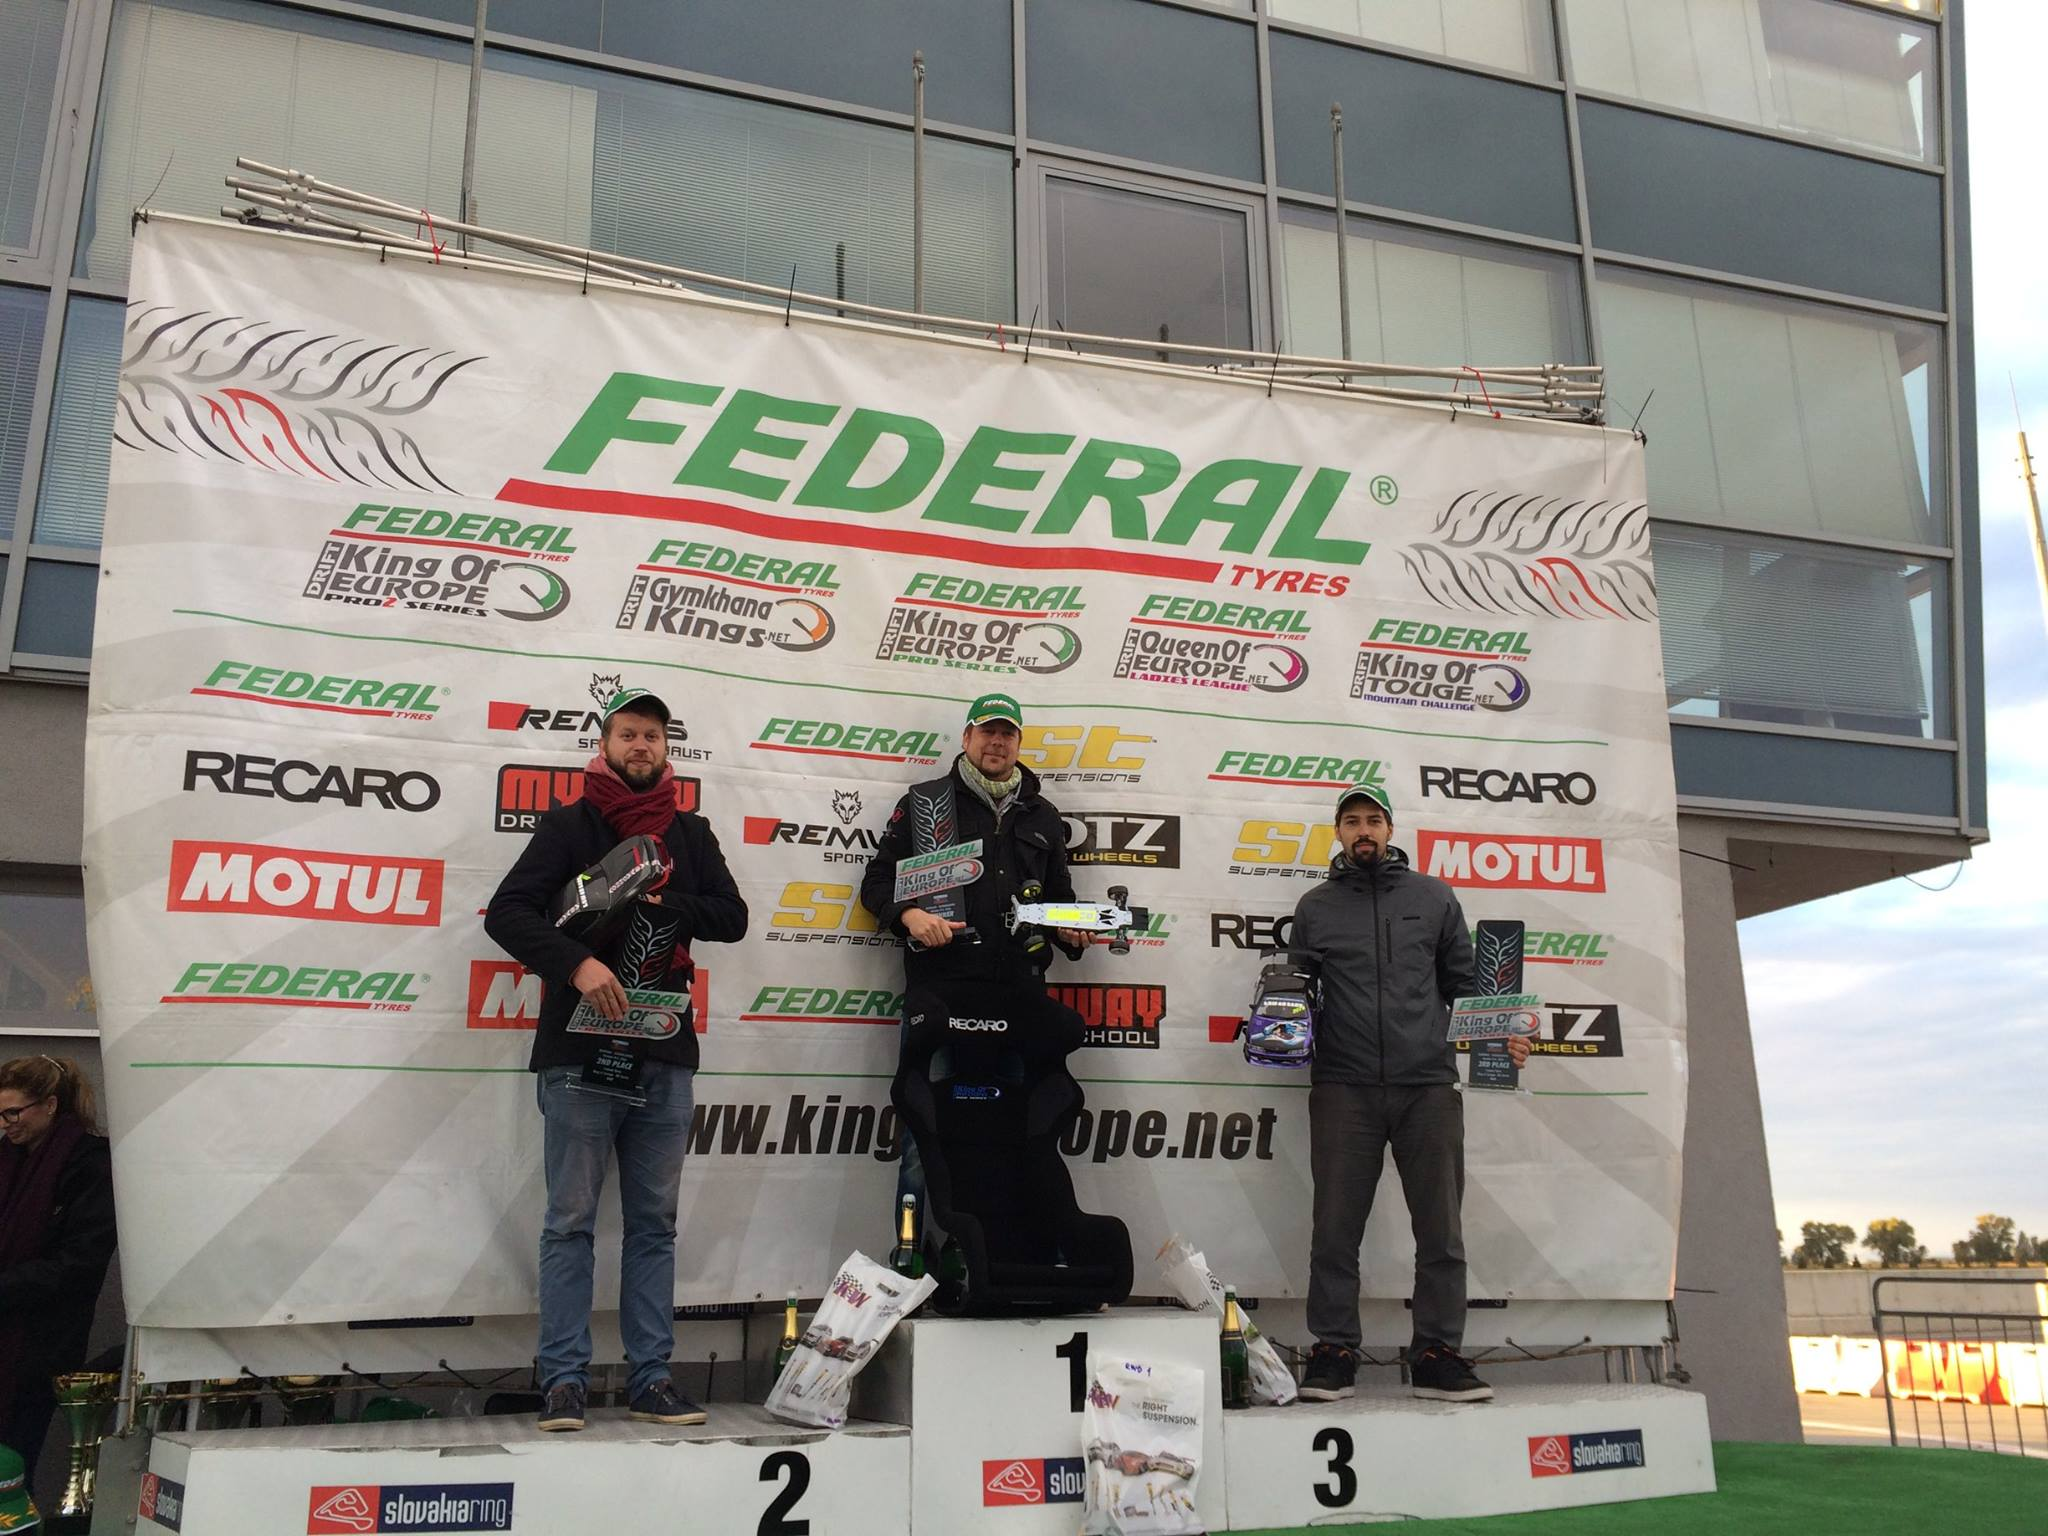 King Of Europe RC series podiumas